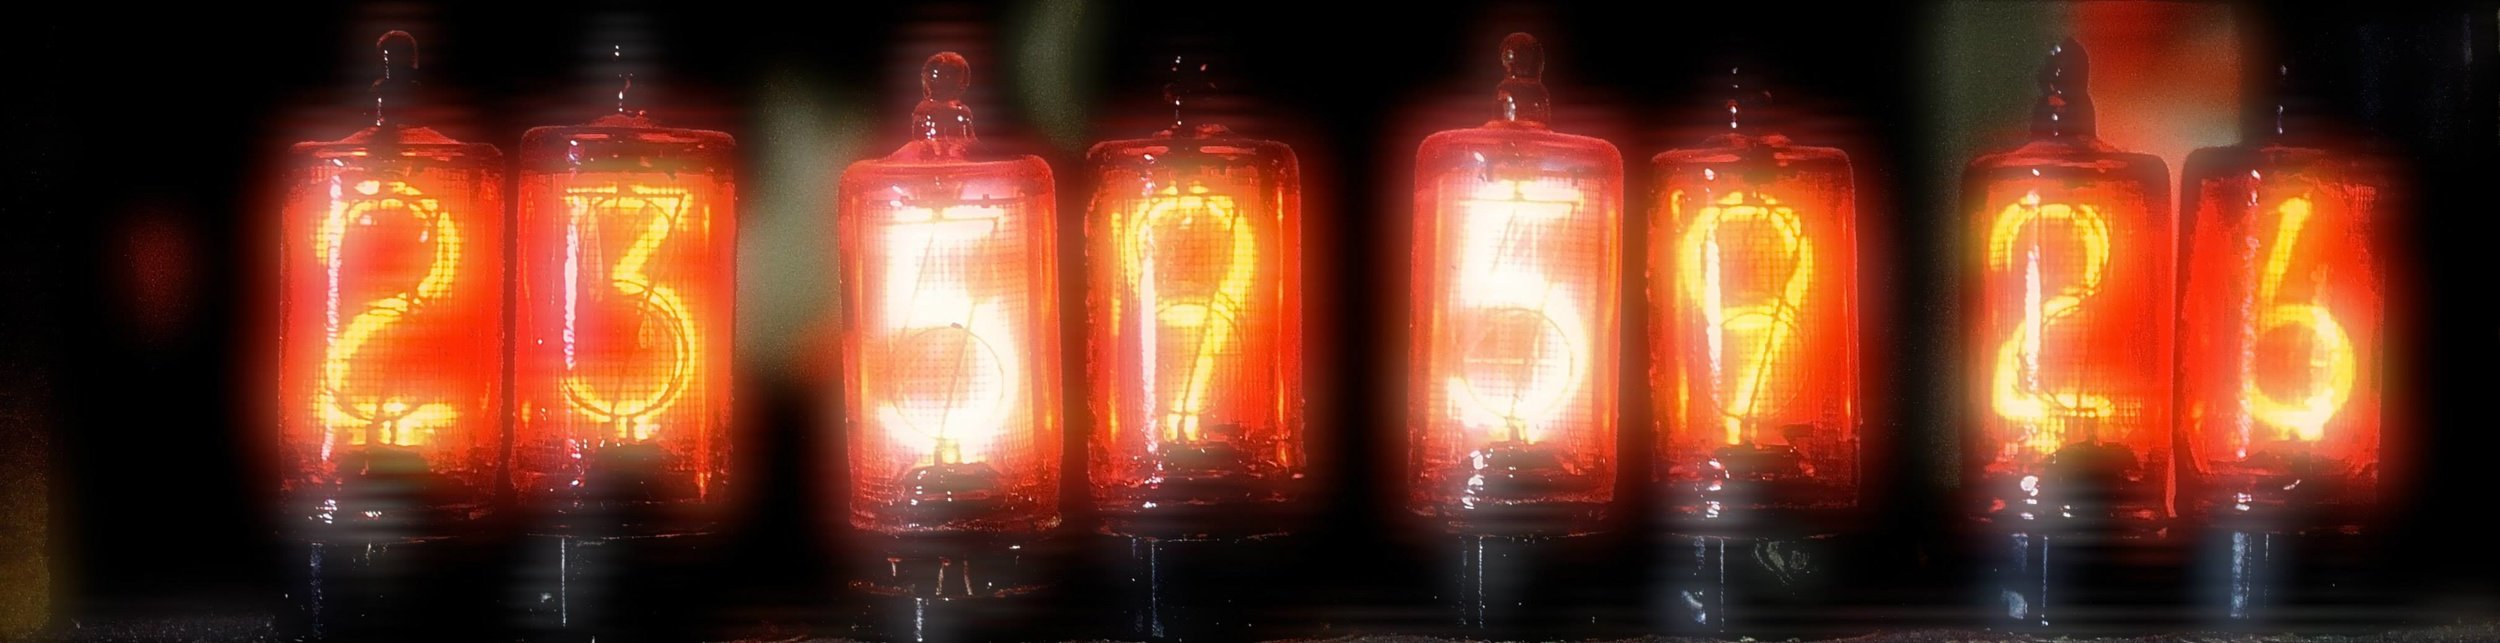 Nixie tubes AVR-1 tape counter